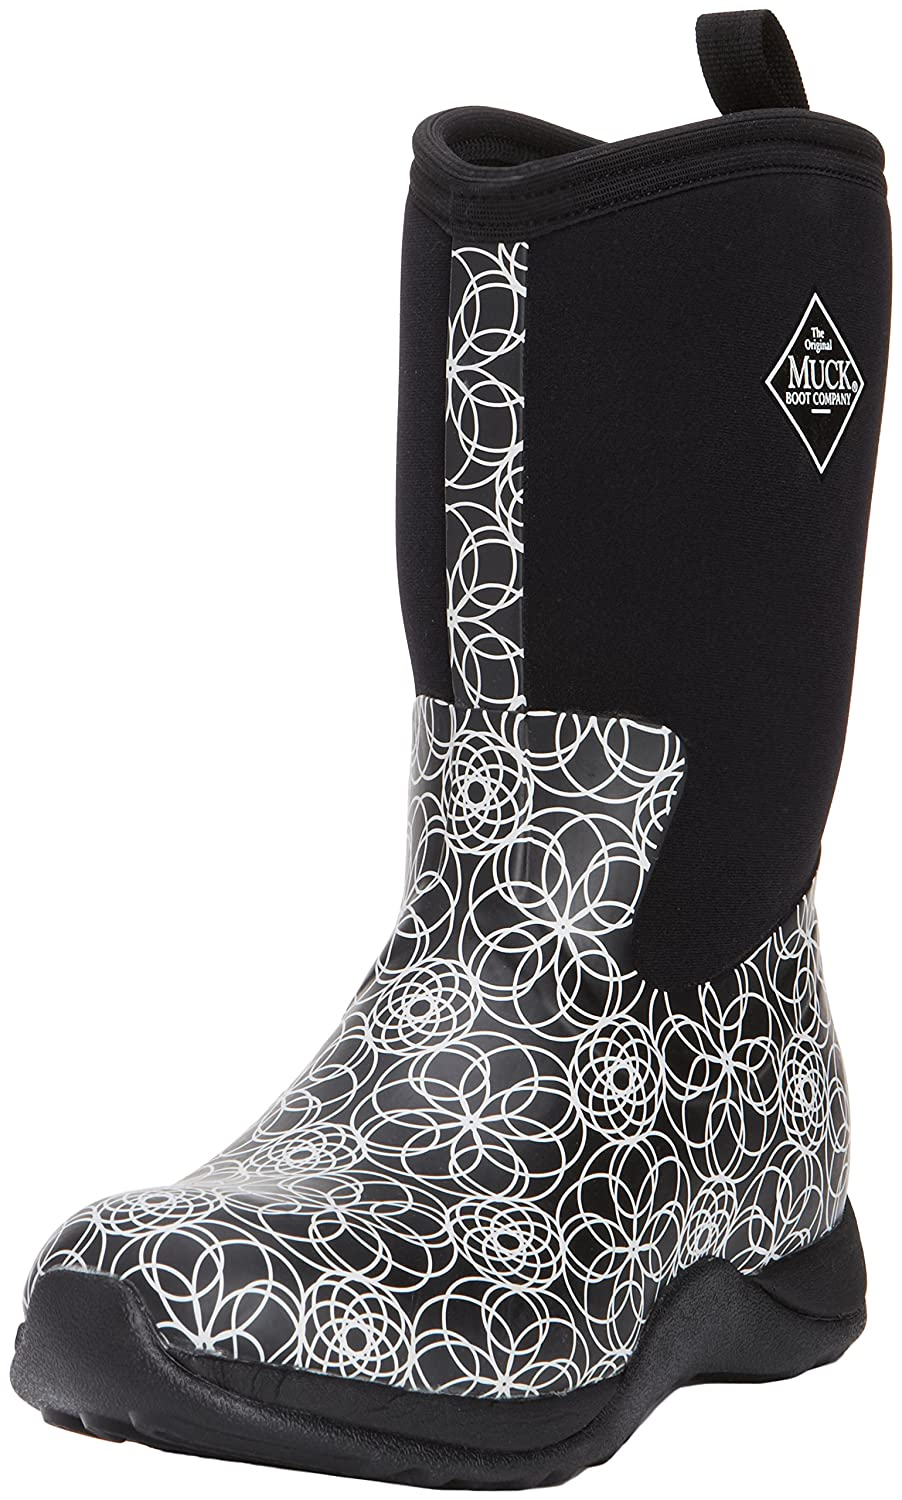 Muck Boot Women's Arctic Weekend Mid Snow B00G2J7HYA 7 B(M) US|Swirl